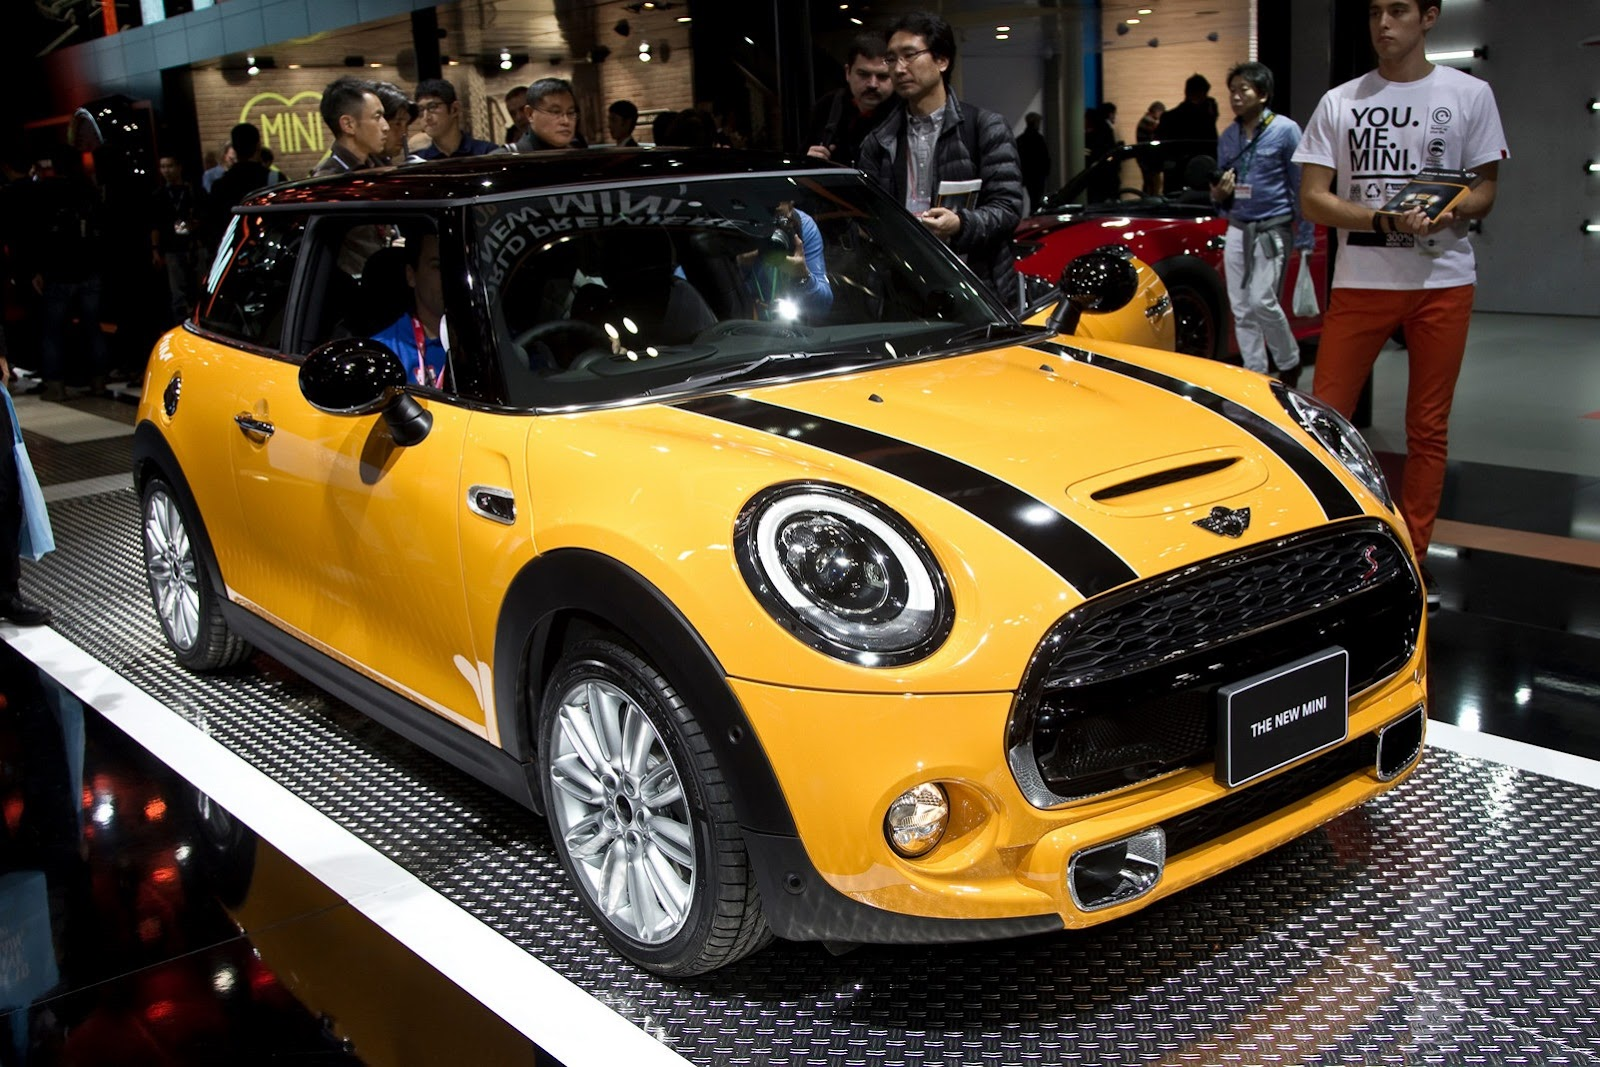 2015 mini cooper hatch at the los angeles auto show 2015 mini cooper forum. Black Bedroom Furniture Sets. Home Design Ideas